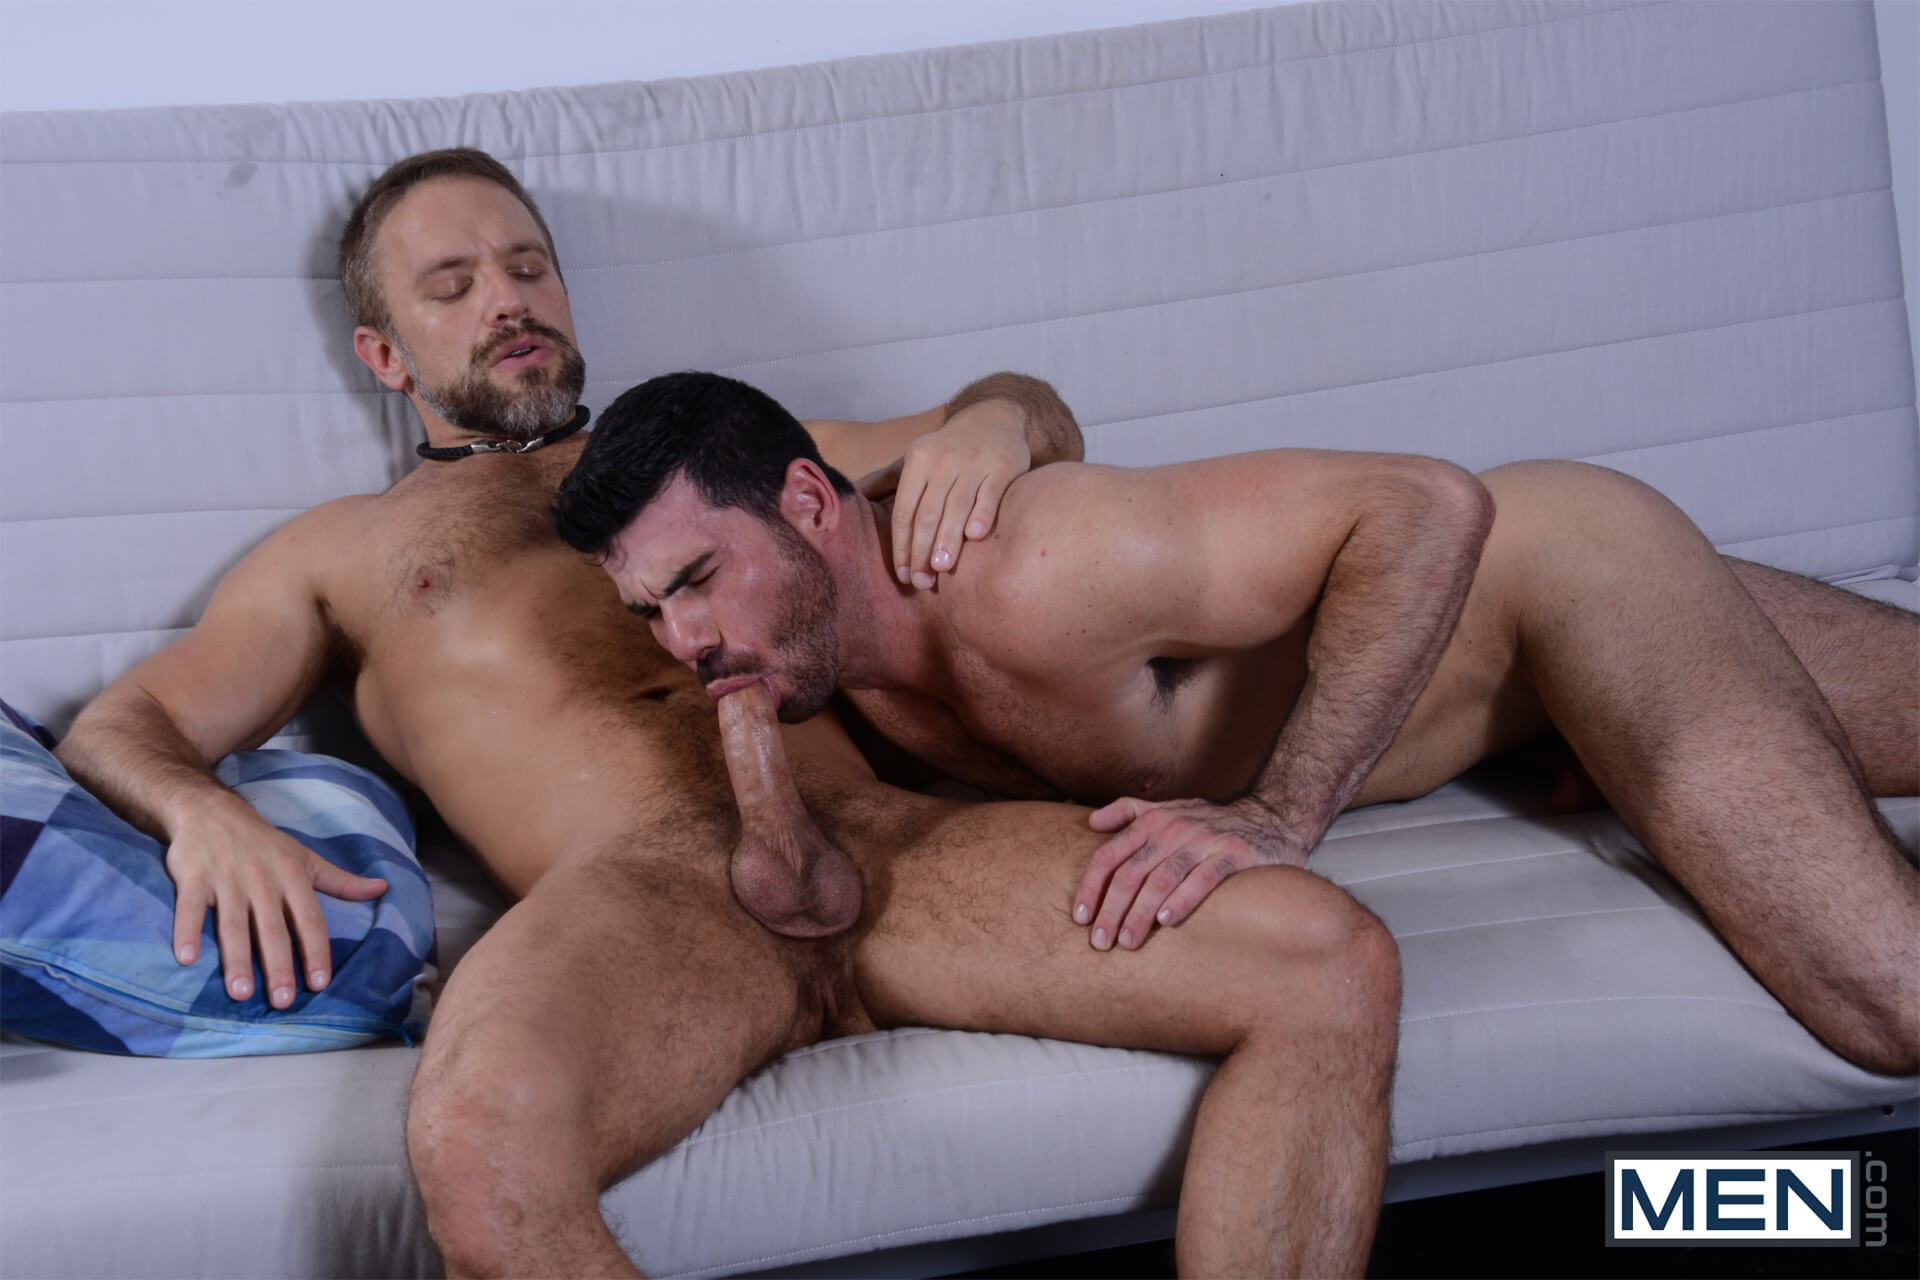 men drill my hole neighbors part 1 billy santoro dirk caber gay porn blog image 6